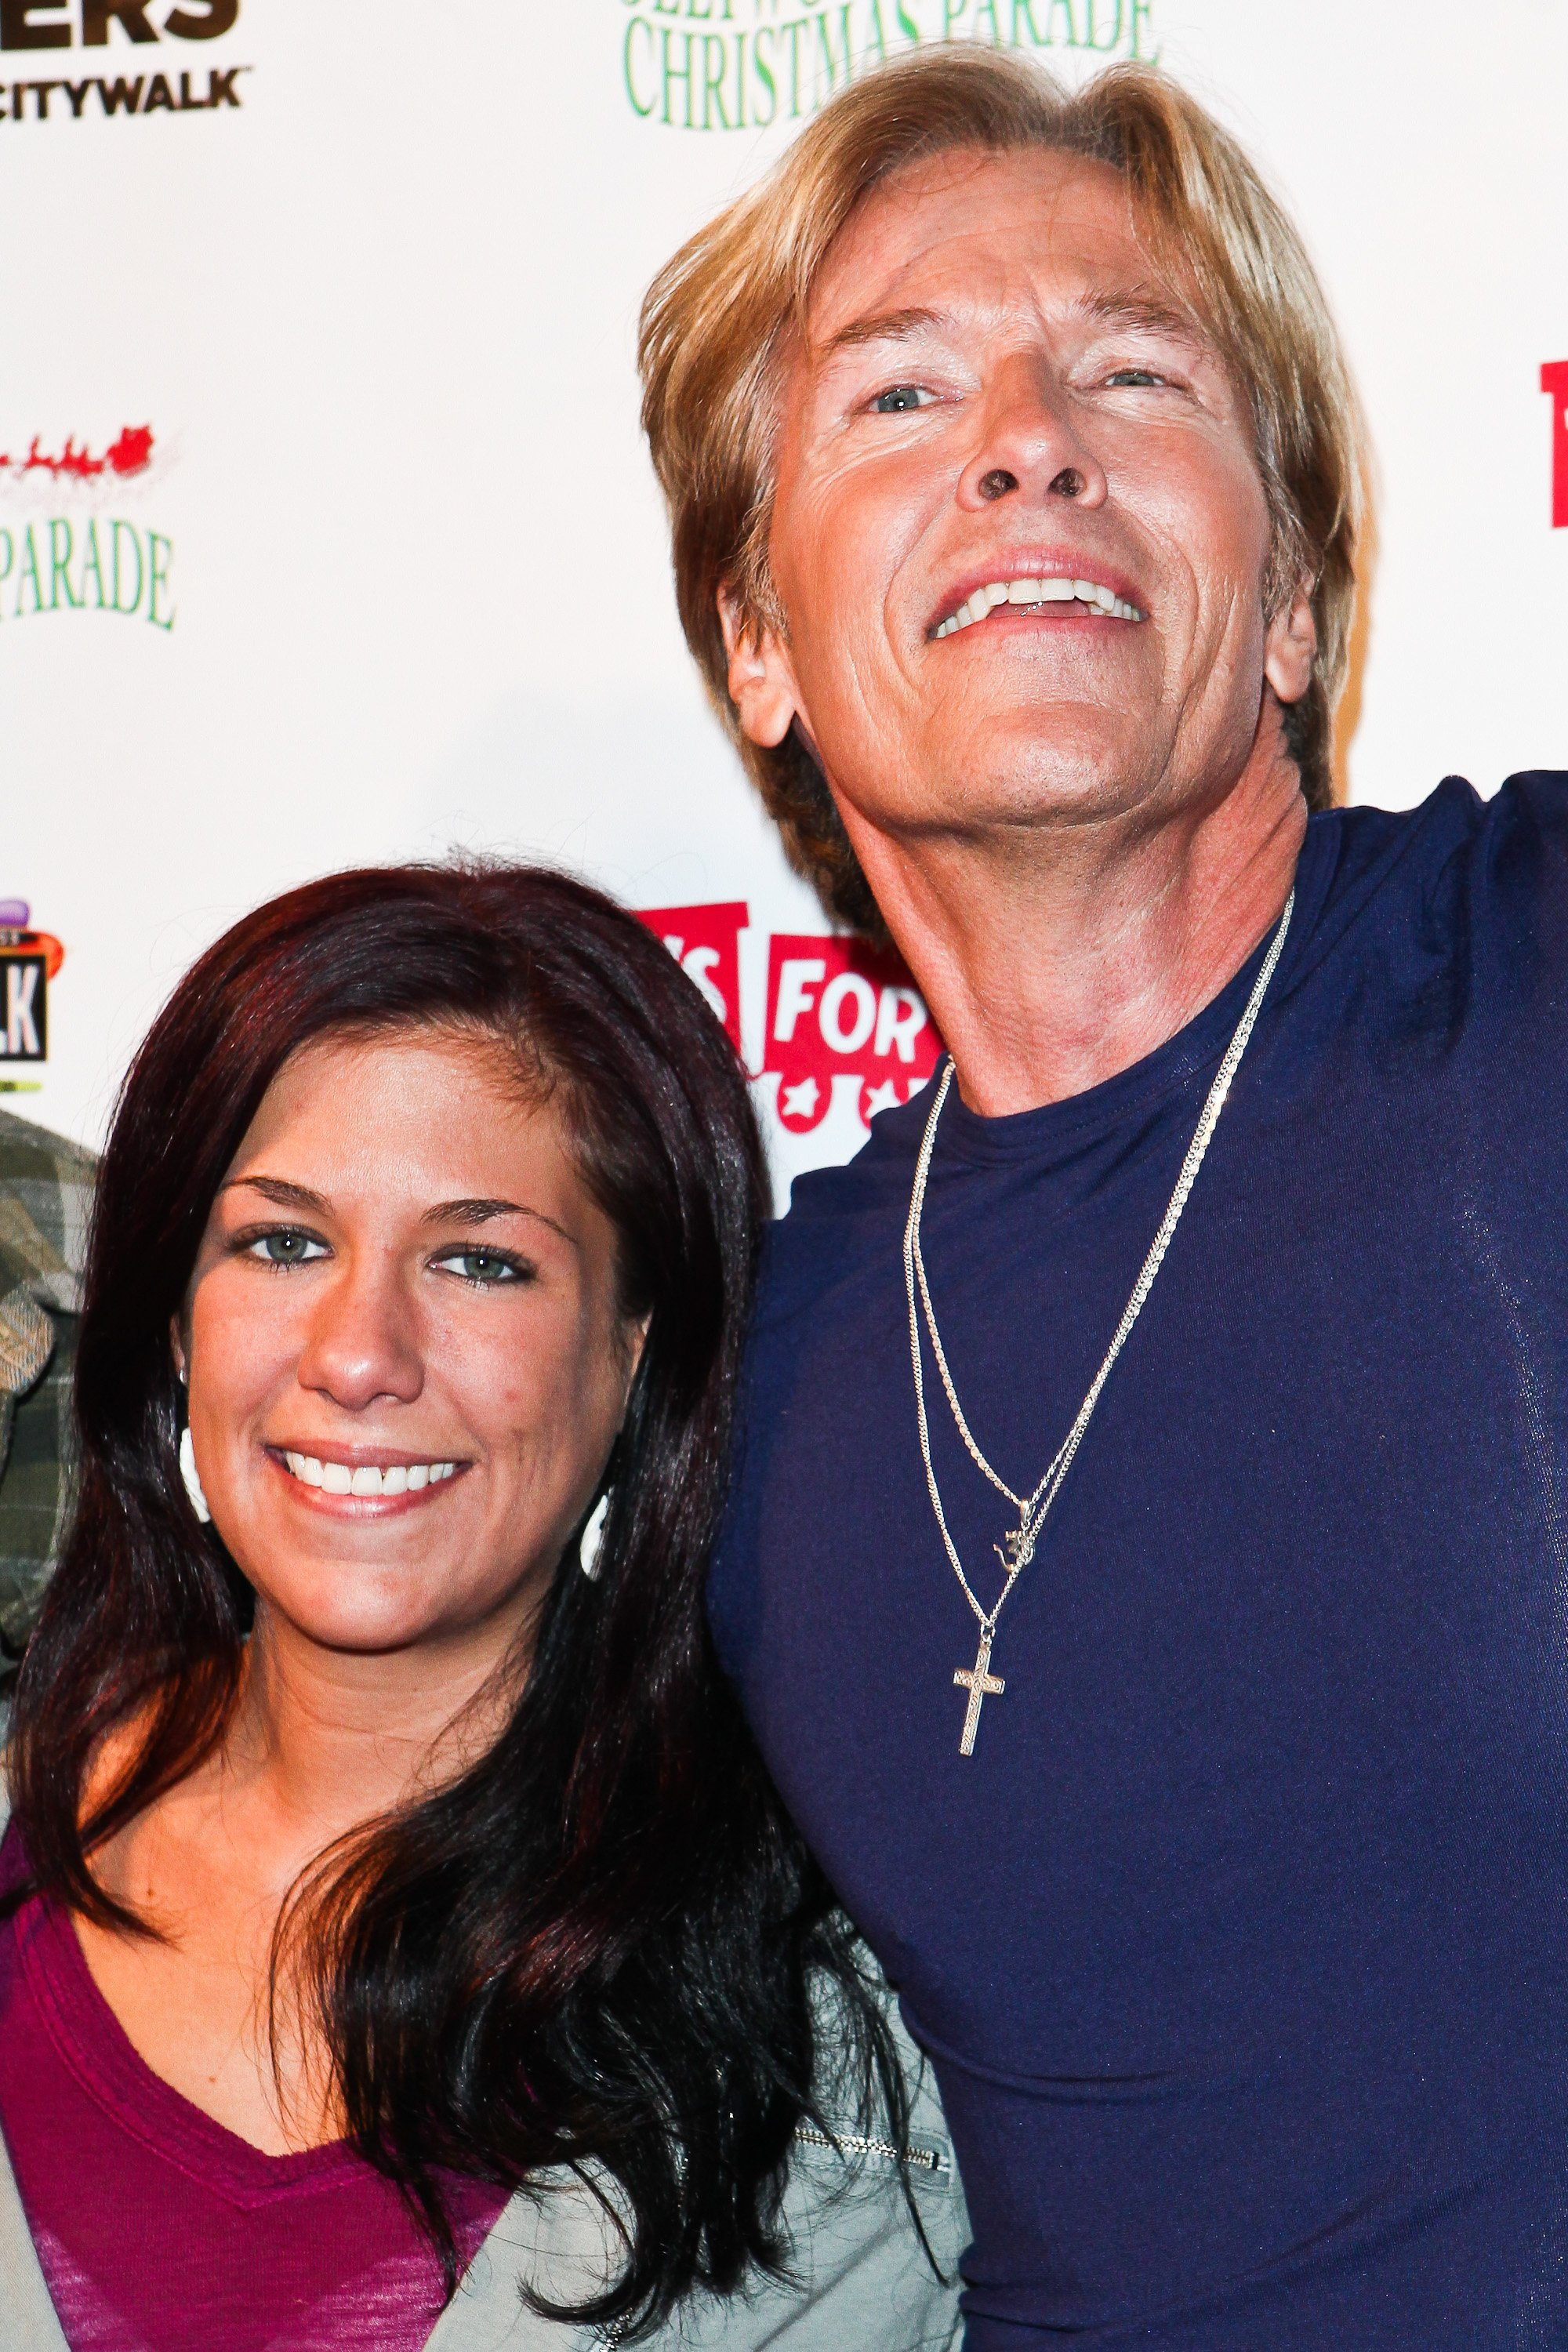 Kerry and Jack Wagner at the Hollywood Christmas Parade in 2011 | Photo: Getty Images